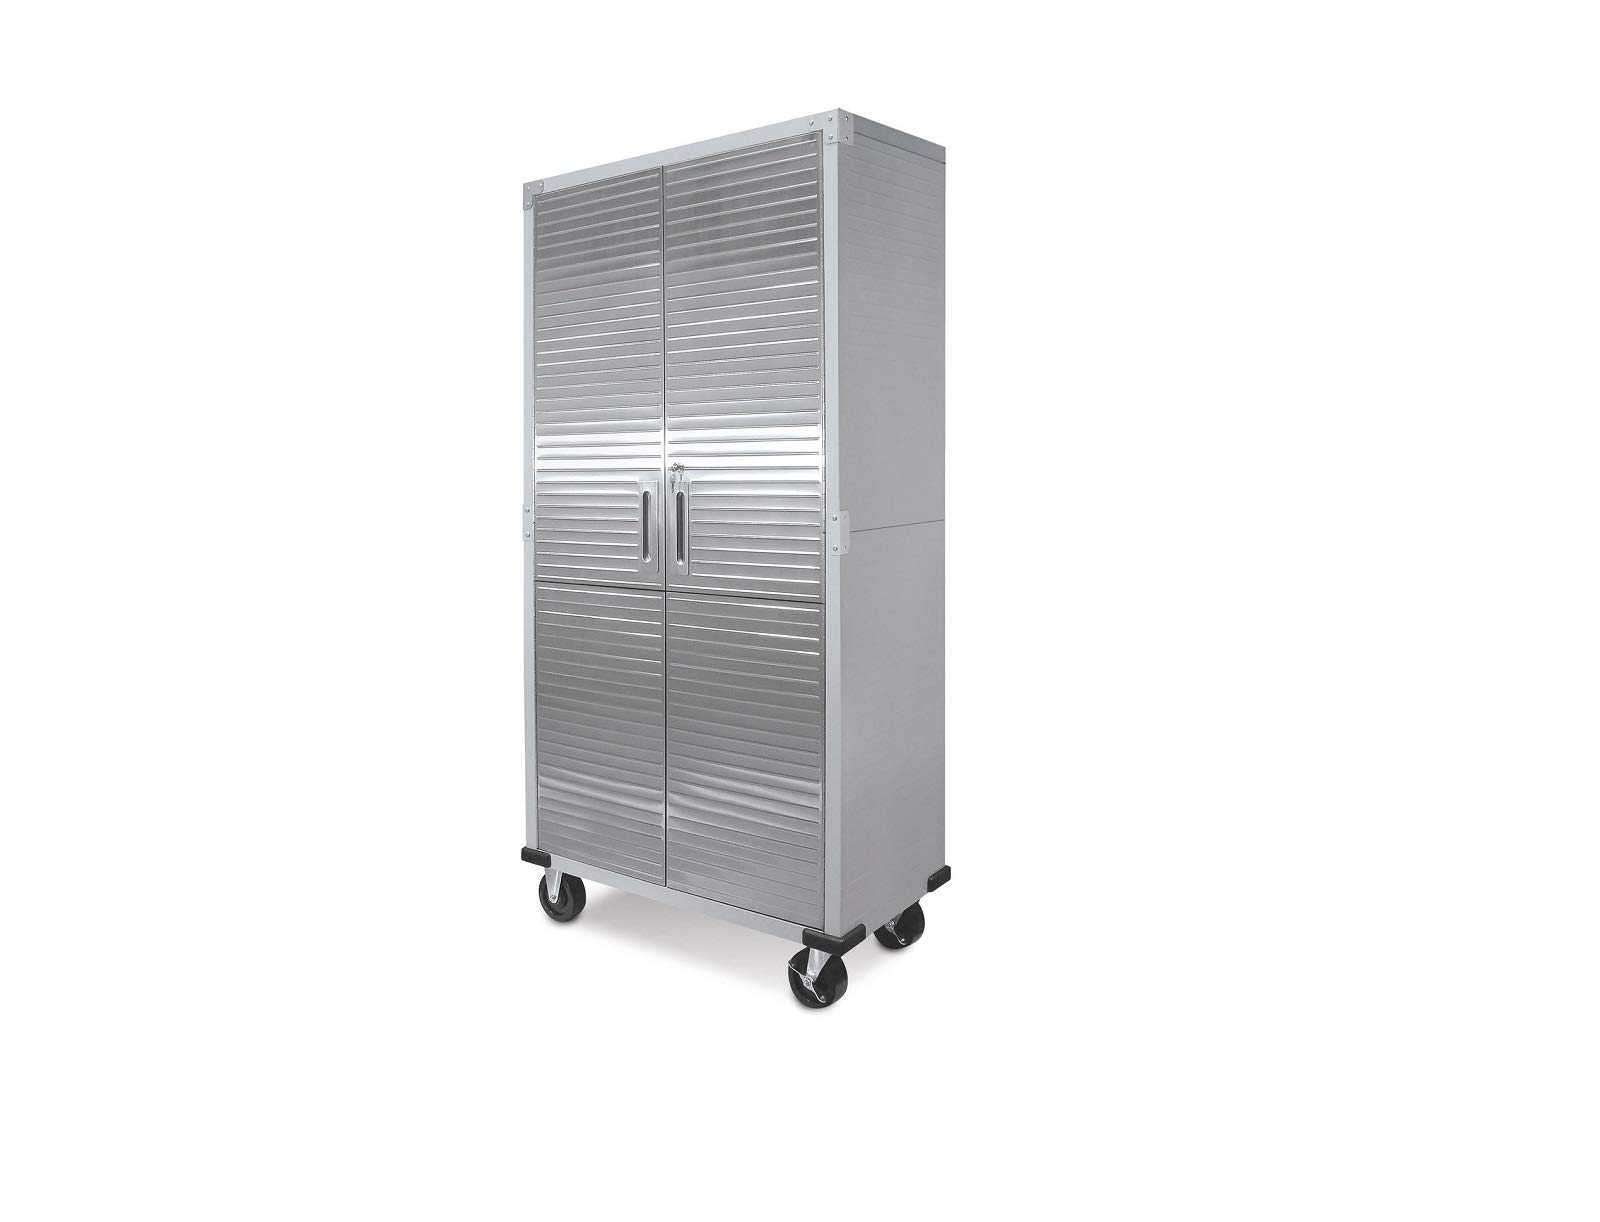 UltraHD Tall Storage Cabinet - Stainless Steel 2 Pack by Seville Classics